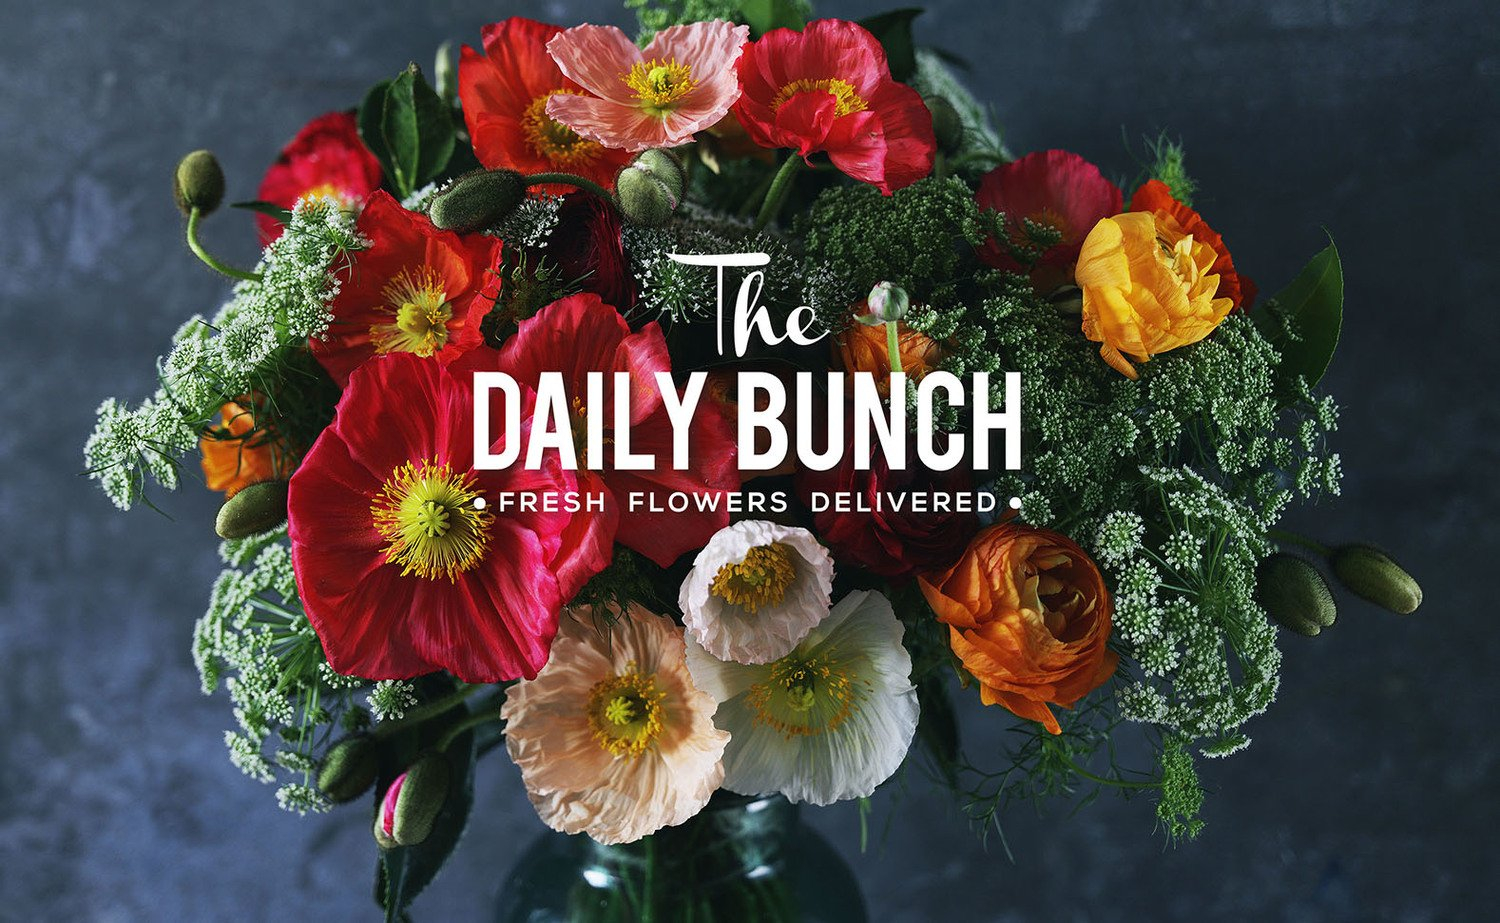 The daily bunch fresh flowers delivered in sydney enter izmirmasajfo